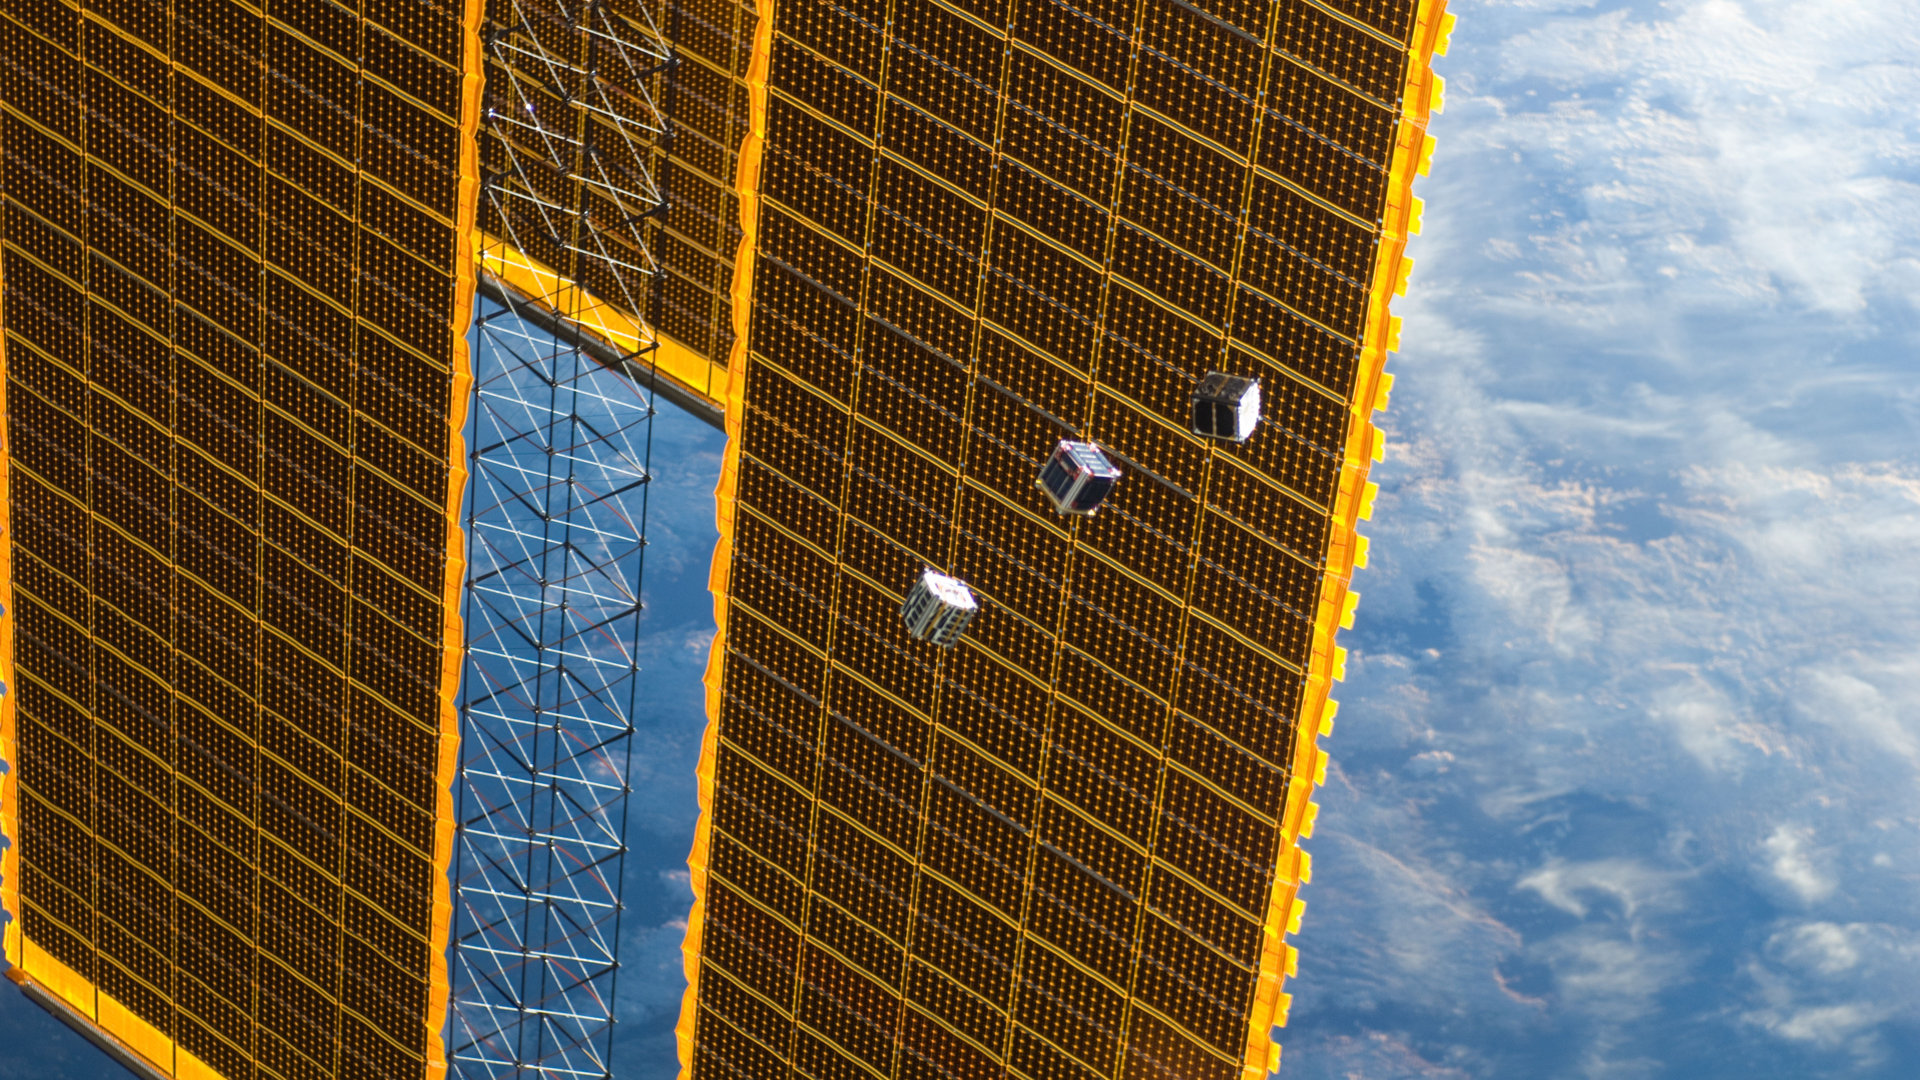 Be the first to catch the signals from a new Satellite in